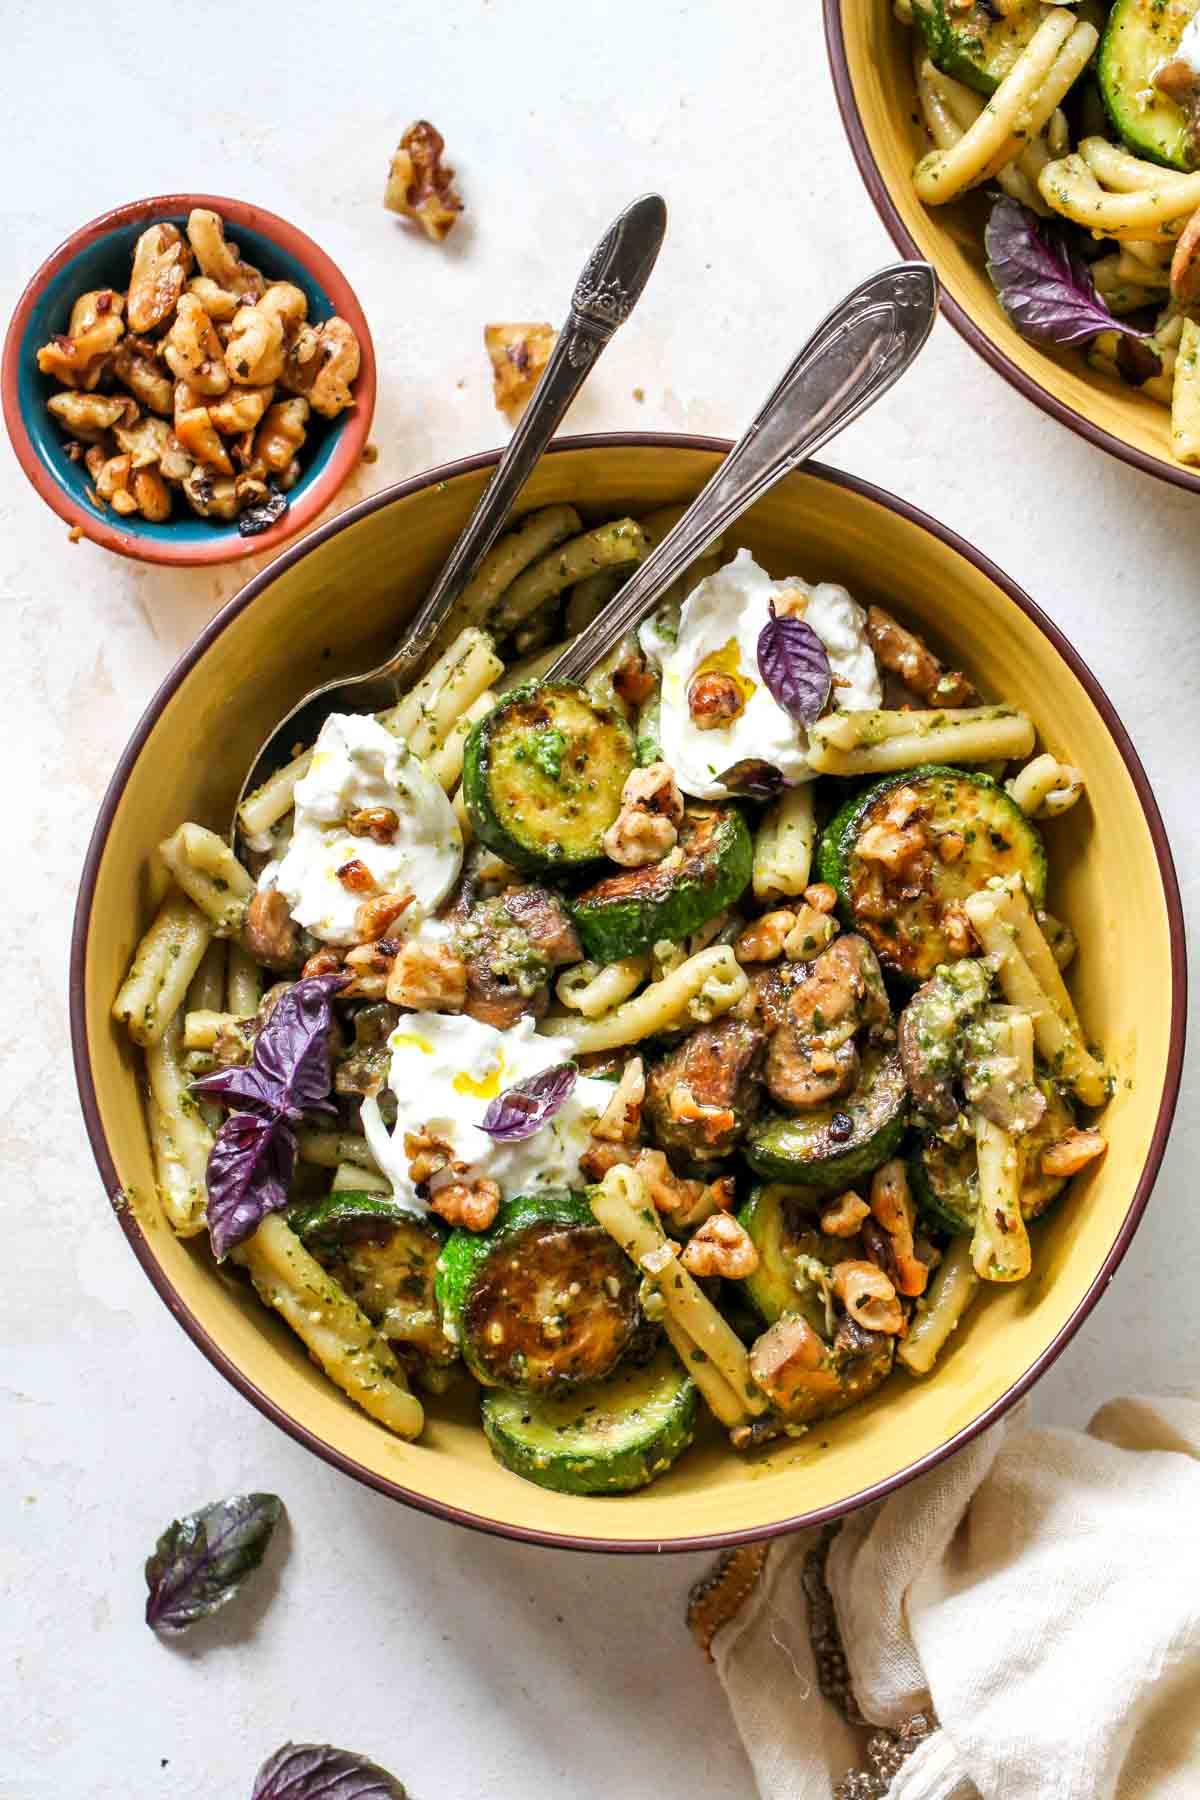 Pesto pasta in a yellow bowl with zucchini and mushrooms